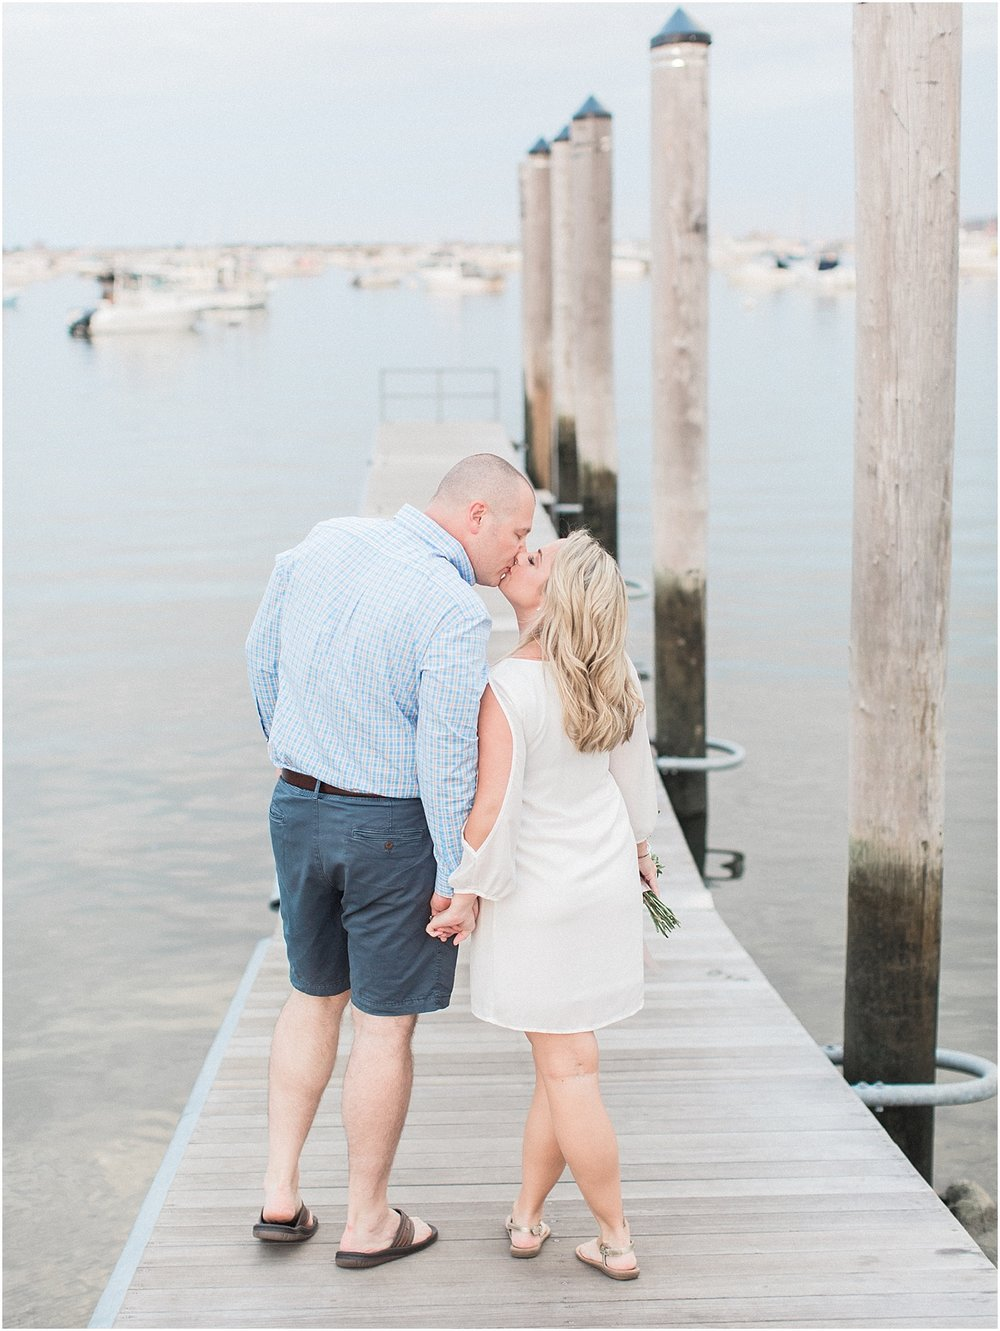 amy_erik_plymouth_brewster_gardens_jetty_champagne_cape_cod_boston_wedding_photographer_meredith_jane_photography_photo_0777.jpg